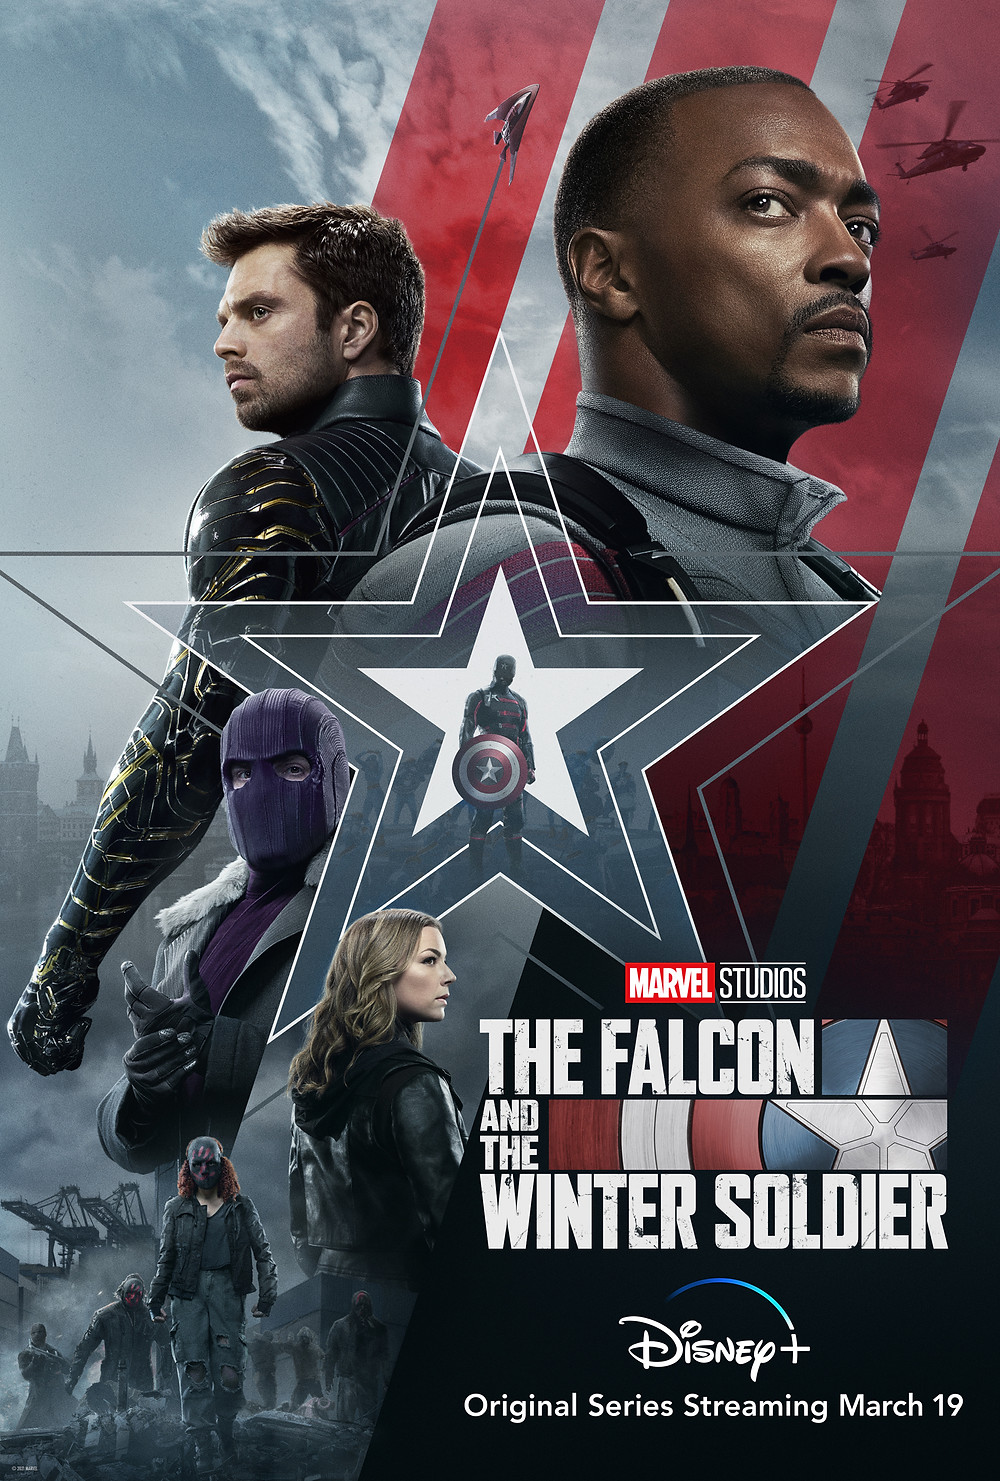 Marvel Studios' The Falcon and The Winter Soldier starring Anthony Mackie and Sebastian Stan exclusively on Disney+.